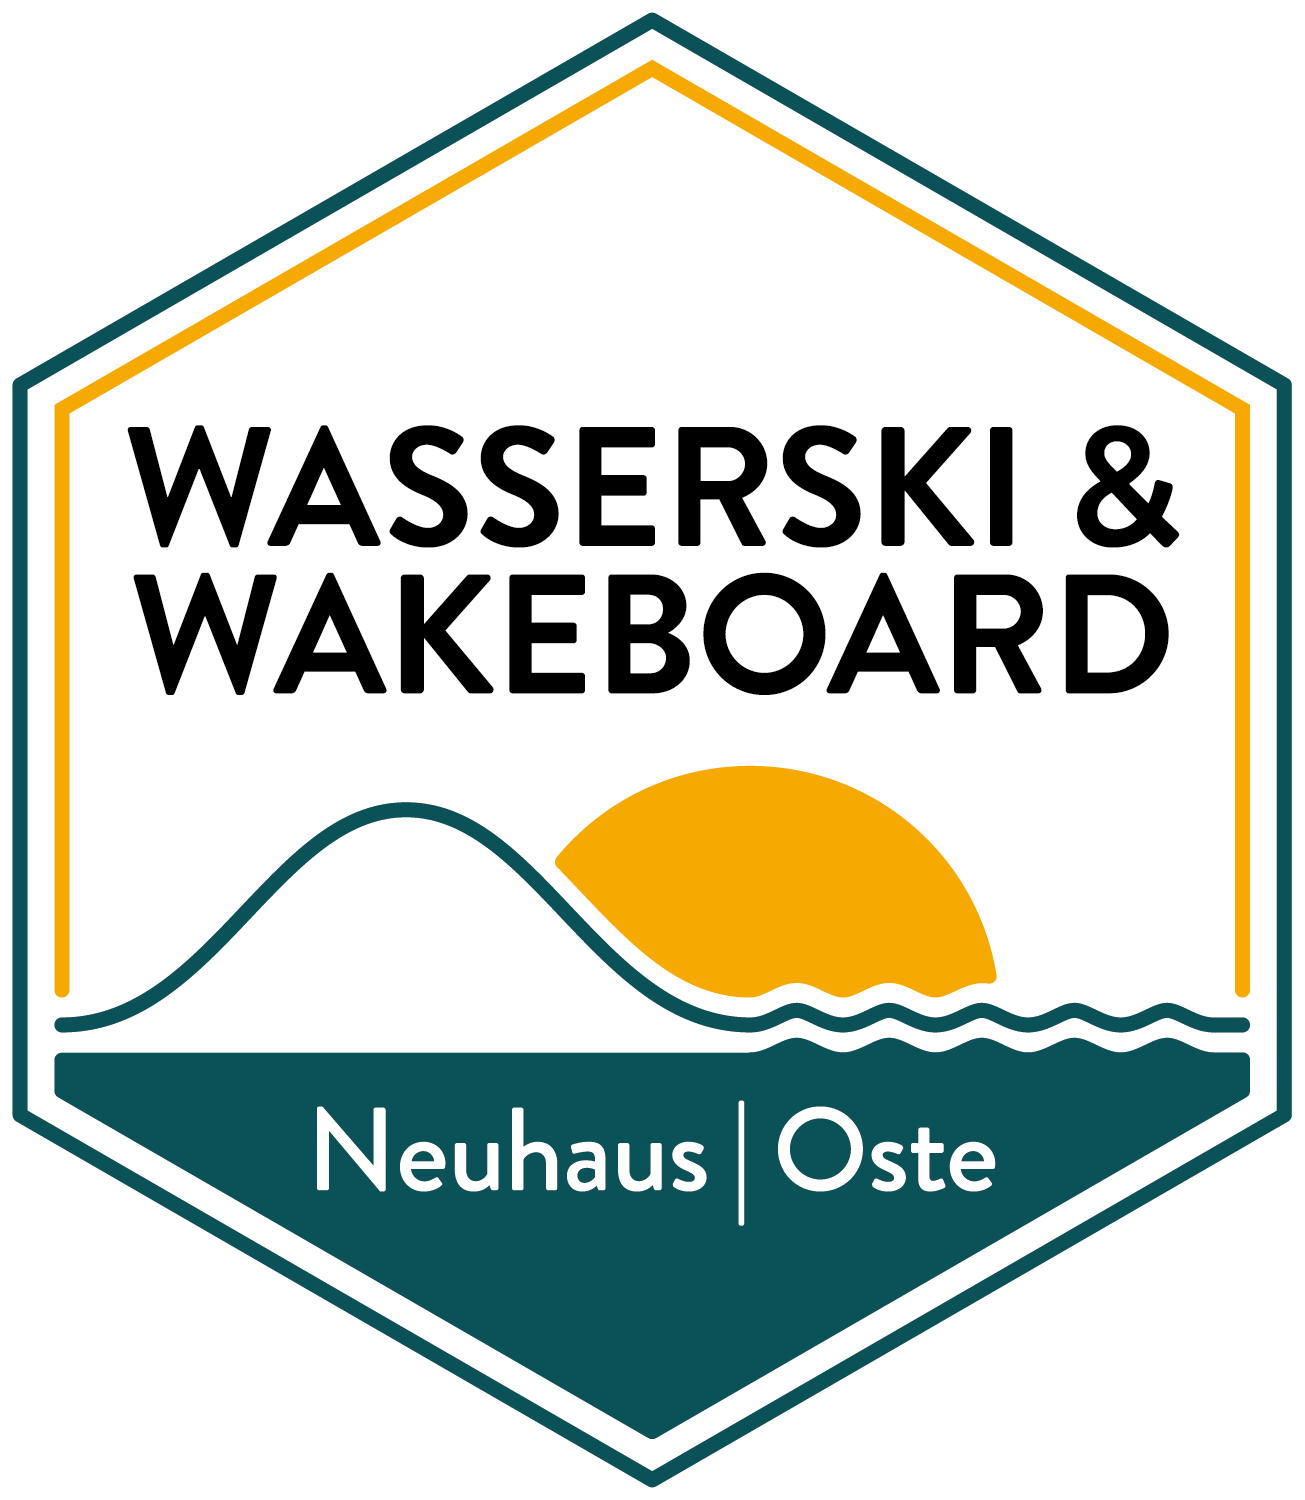 Wasserski&Wakeboard Neuhaus Oste – Corporatedesign Logo